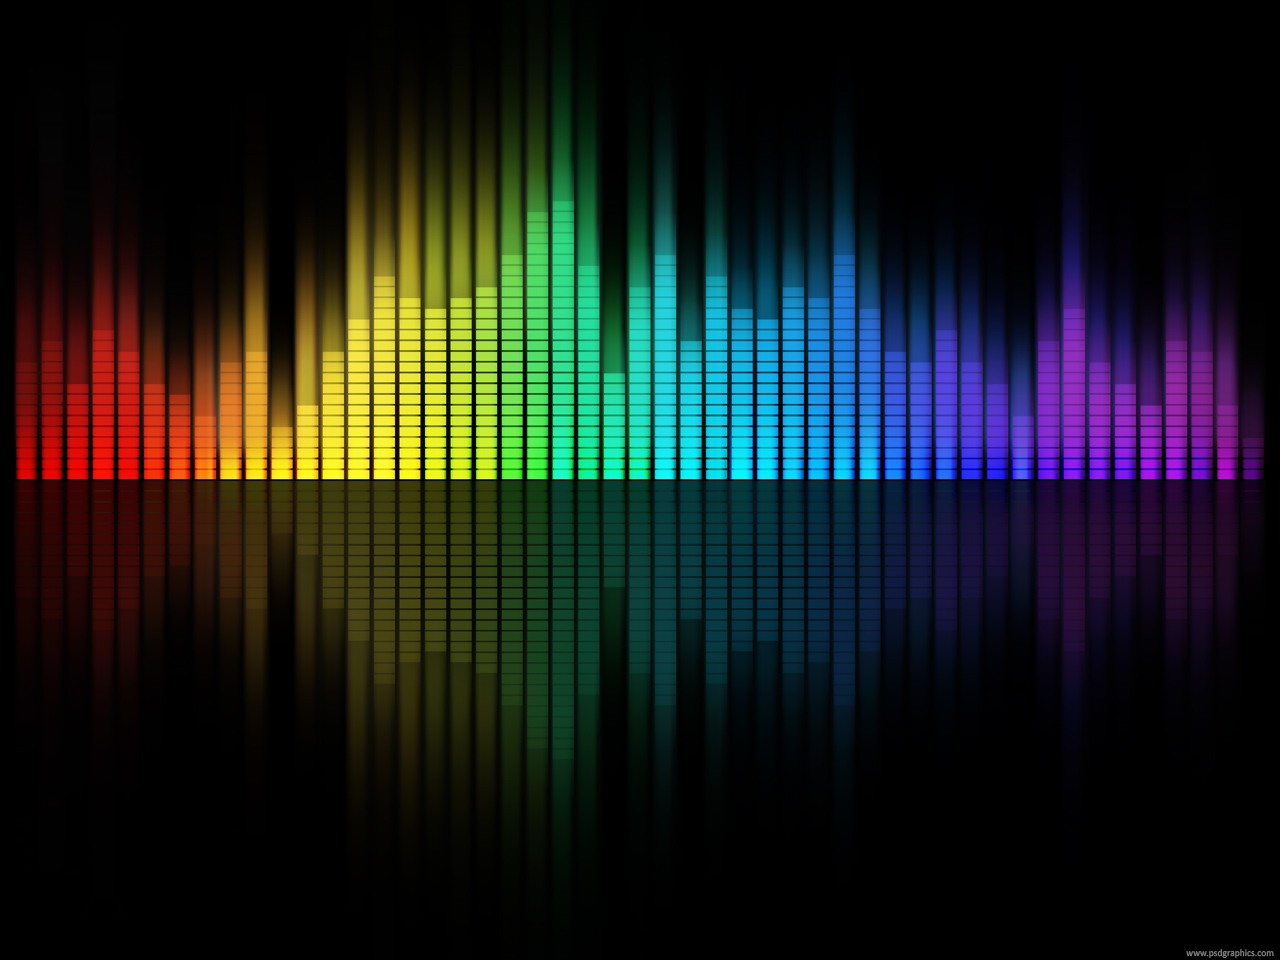 Medium size preview (1280x960px): Music equalizer background